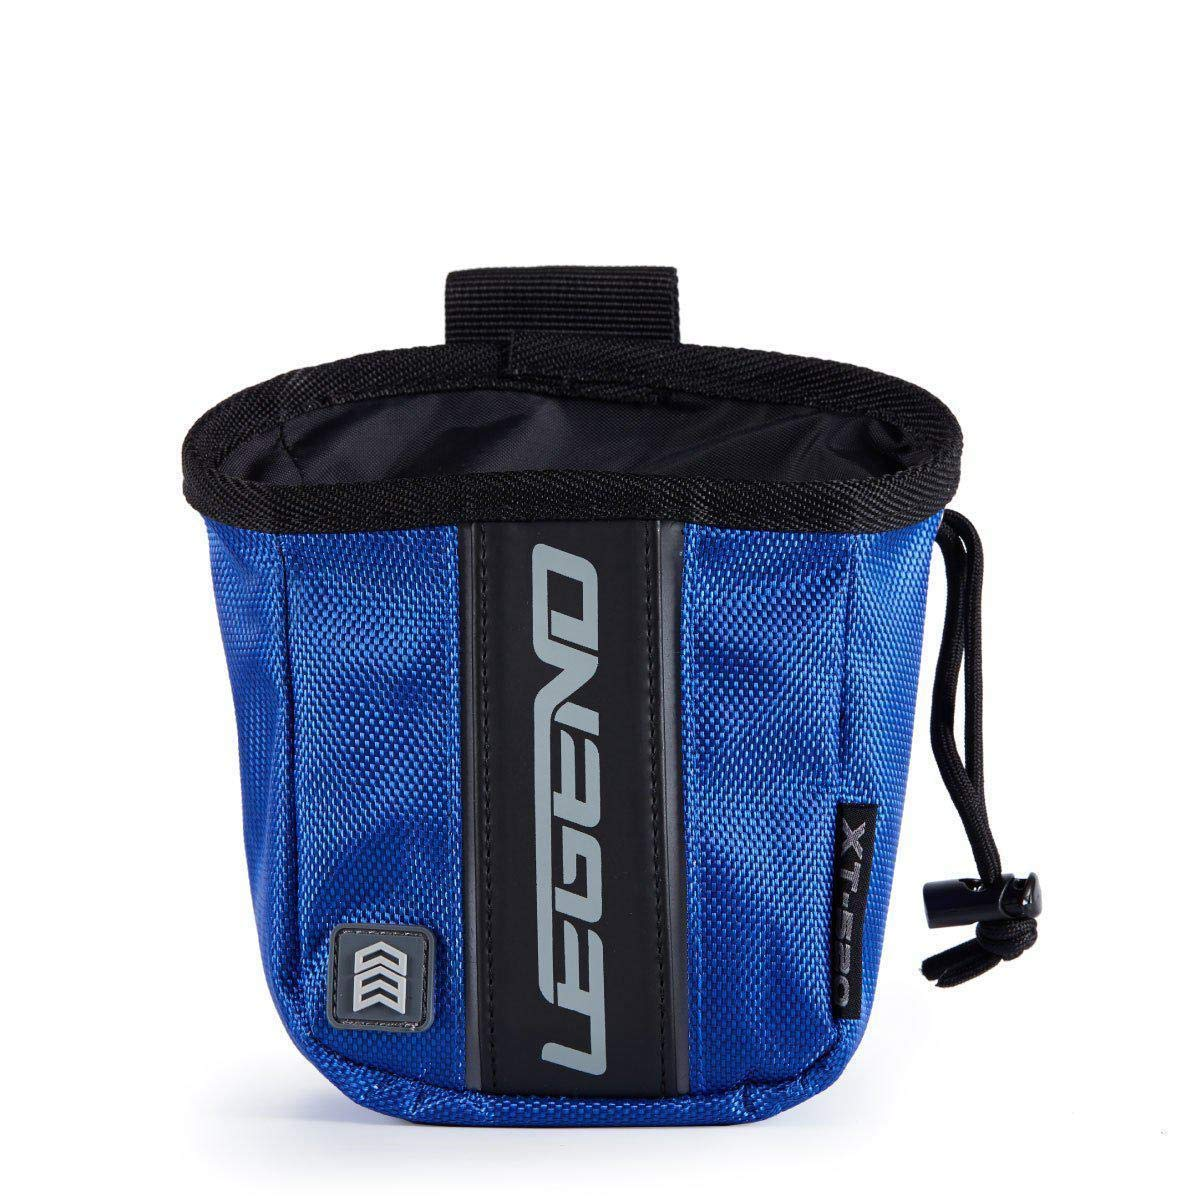 Legend Archery Release Aids Pouch Bag with Belt Loop Draw String and Zipped Pocket XT520 (Blue) by Legend